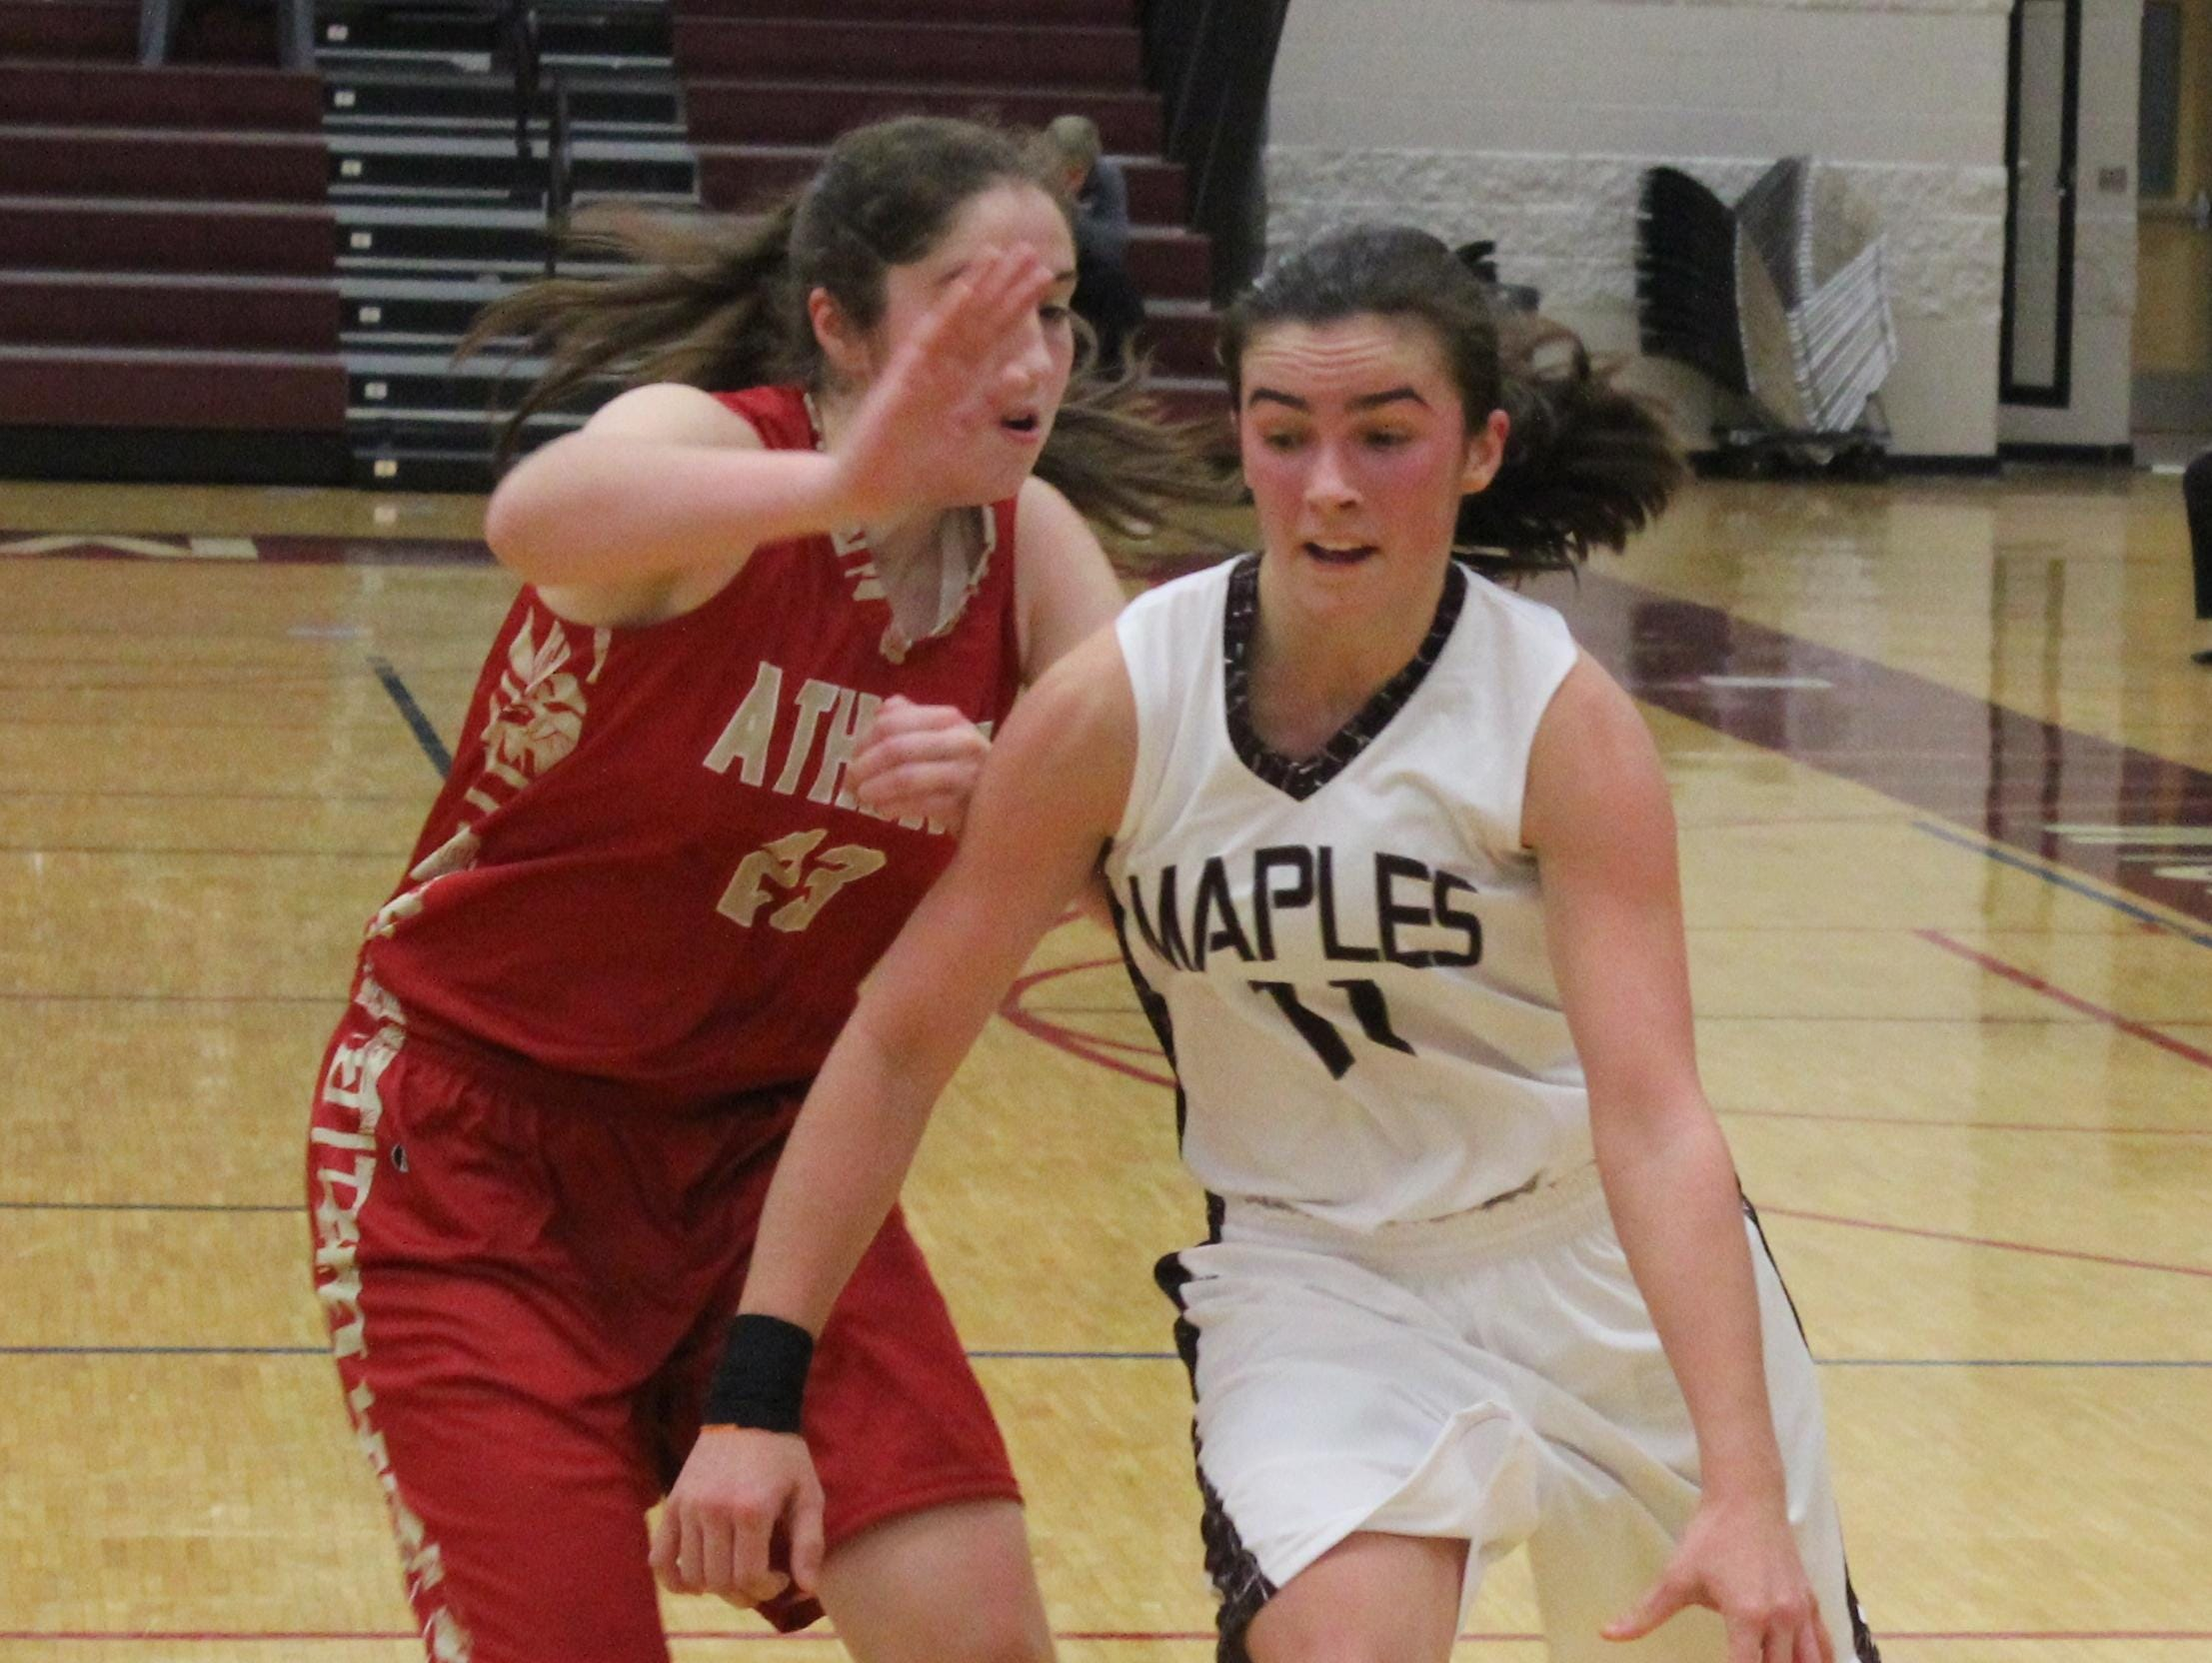 Seaholm's junior guard Mackenzie Harbort races past an Athens defender en route to a game-high 23 points Tuesday evening. The Maples won their season opener, 62-46.